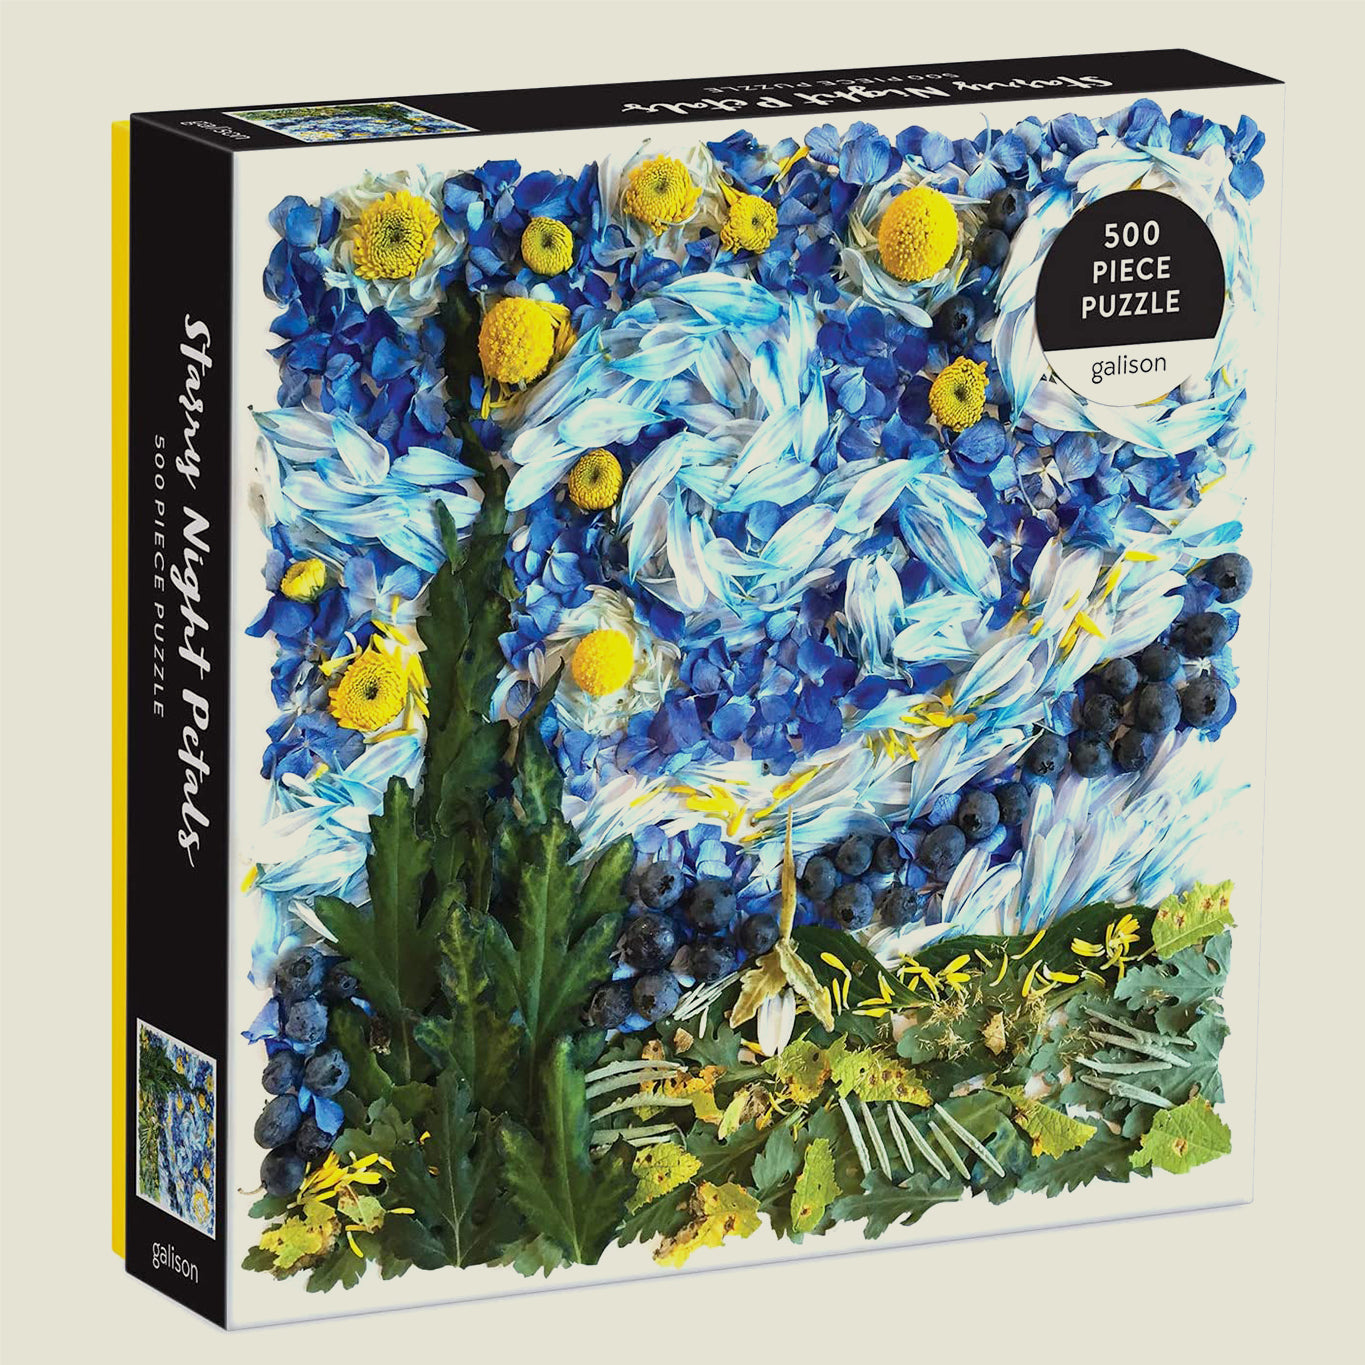 Starry Night Petals Puzzle - Blackbird General Store